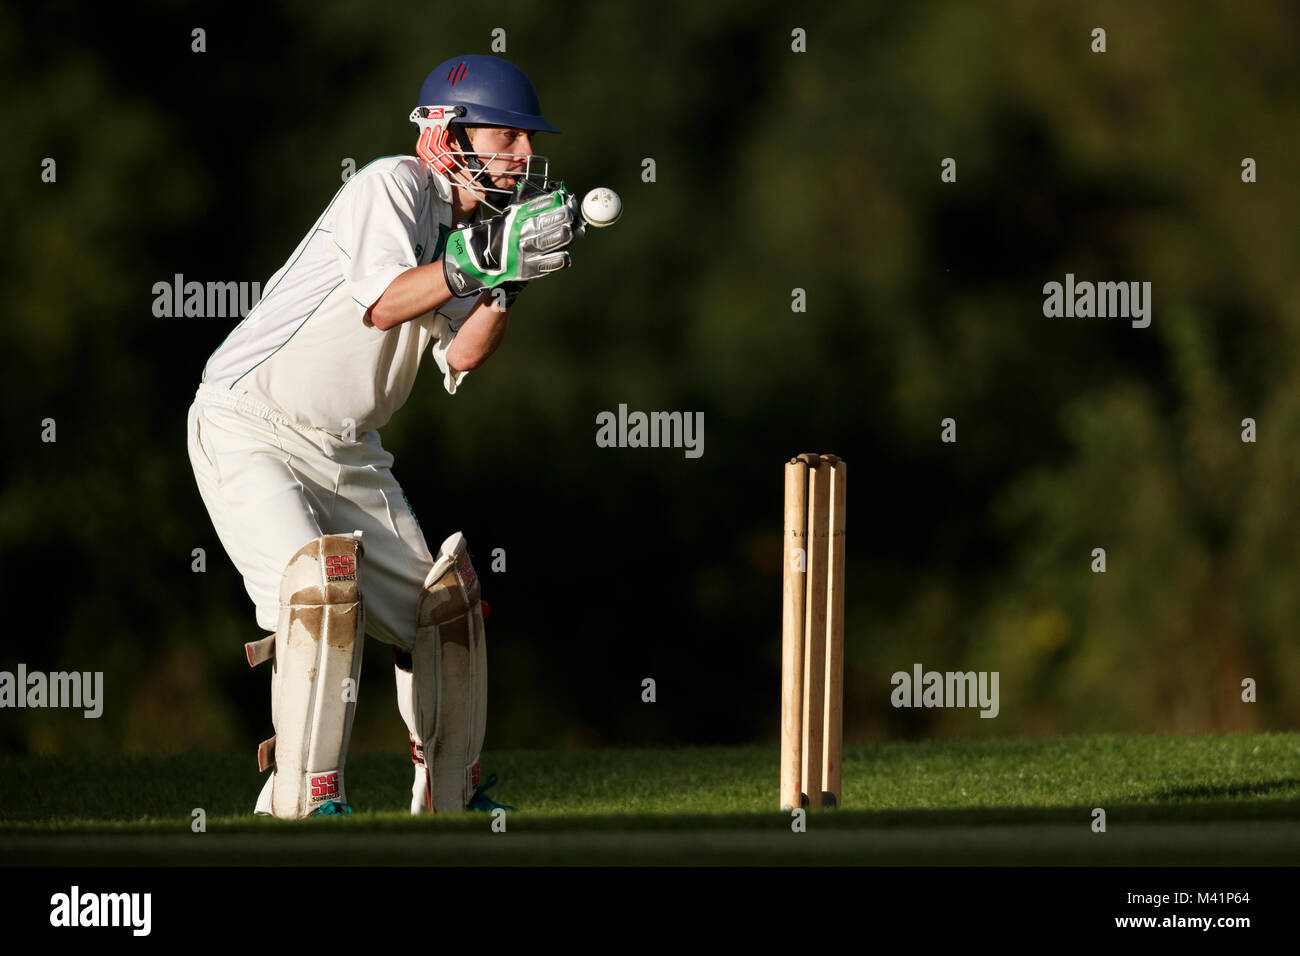 Cricket, wicket keeper in action. - Stock Image